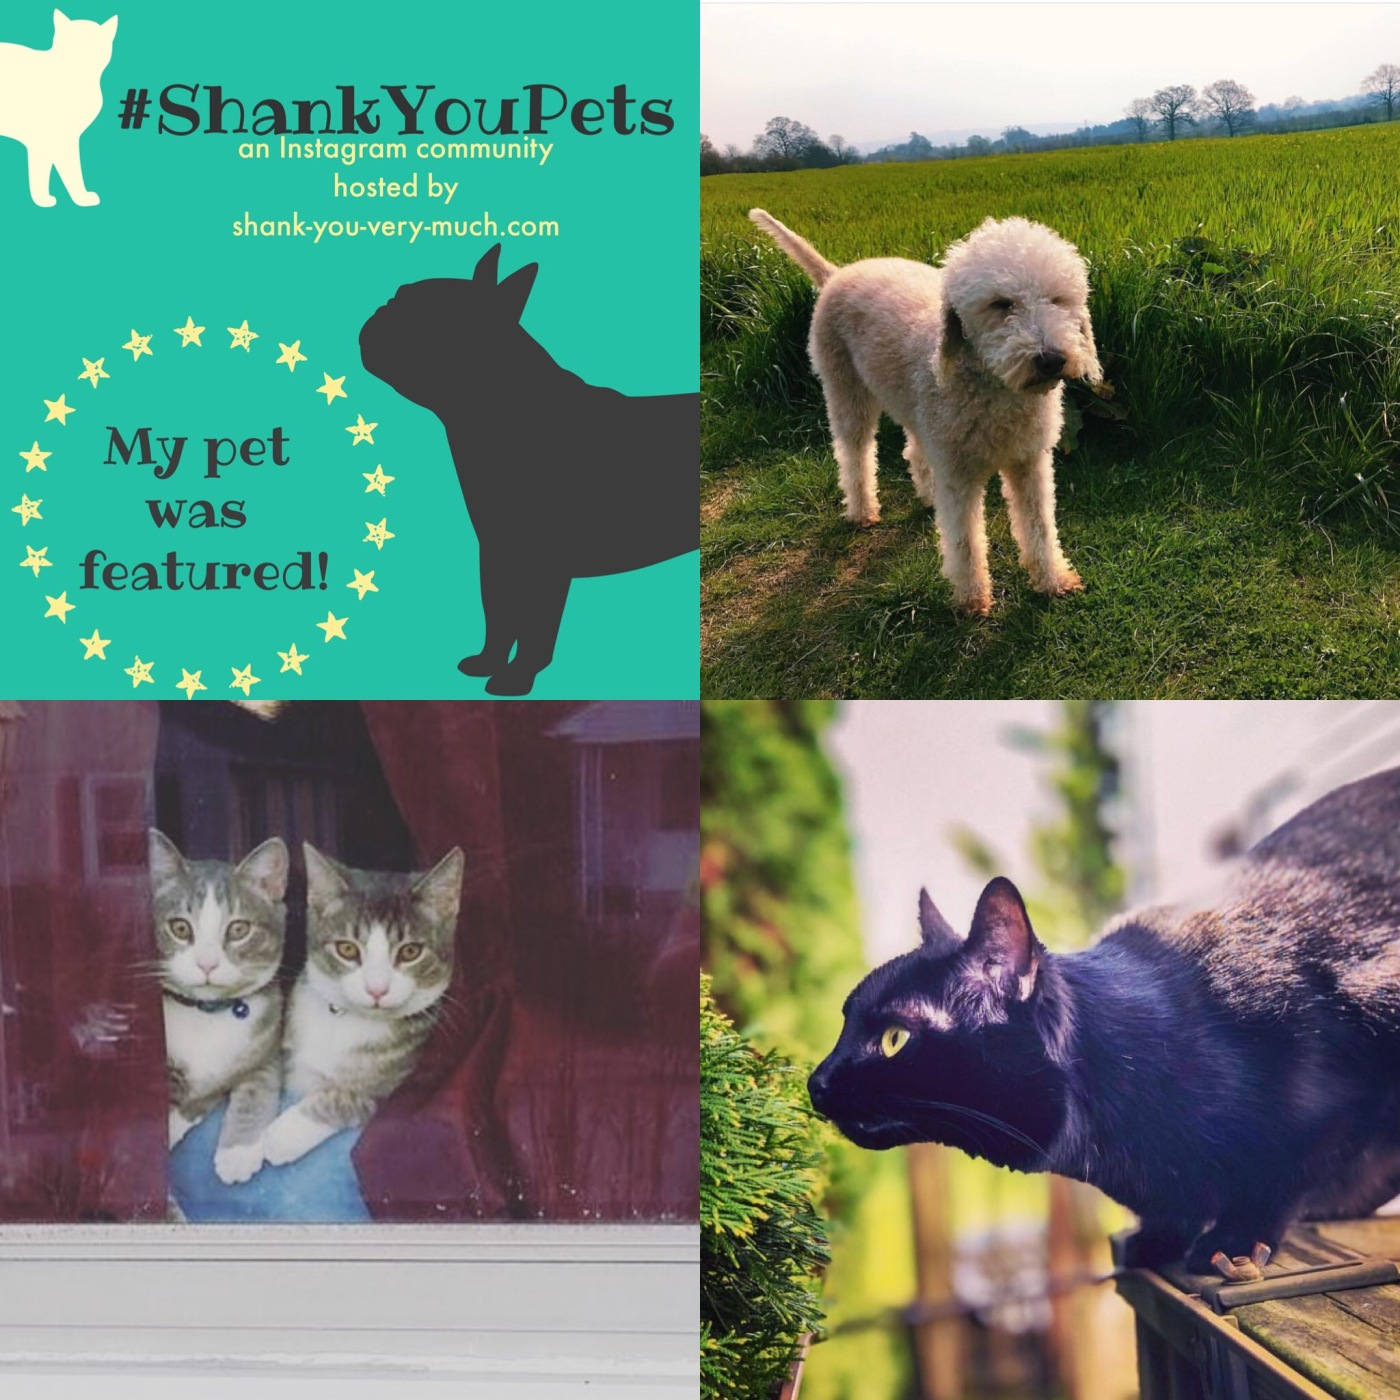 A collage of a dog in a grassy field, two cats peeping out a window, and a black cat ready to pounce.